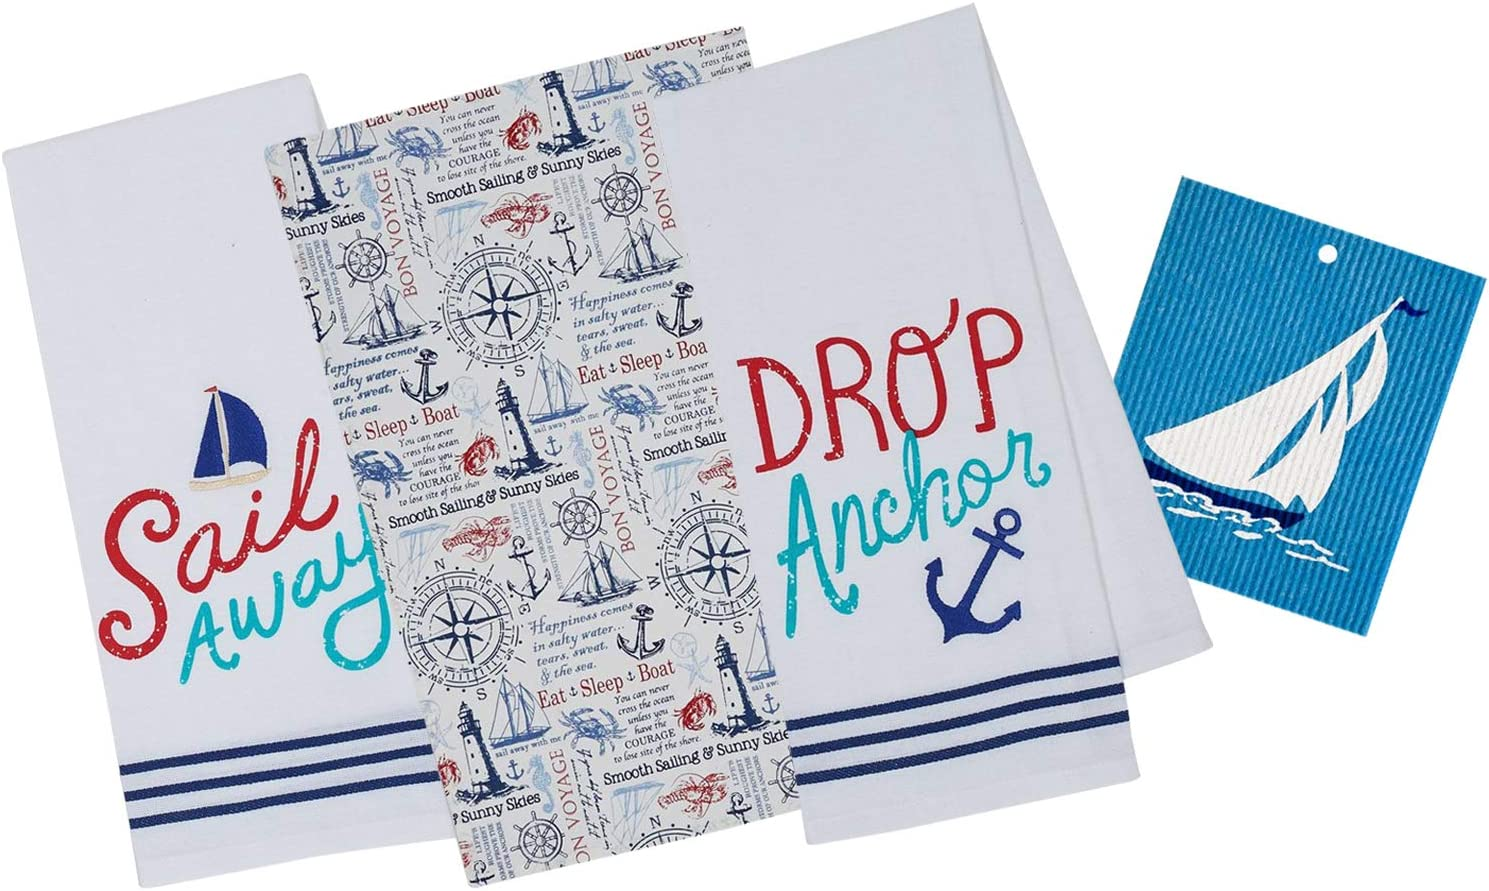 3 Nautical Themed Cotton Kitchen Towels | Anchor, Lighthouse, Sailboat, Wheel, Compass, Sea Life | 2 Embellished, 1 Printed Dishtowel Set for Dishes and Hand Drying | Includes Swedish Dish Cloth